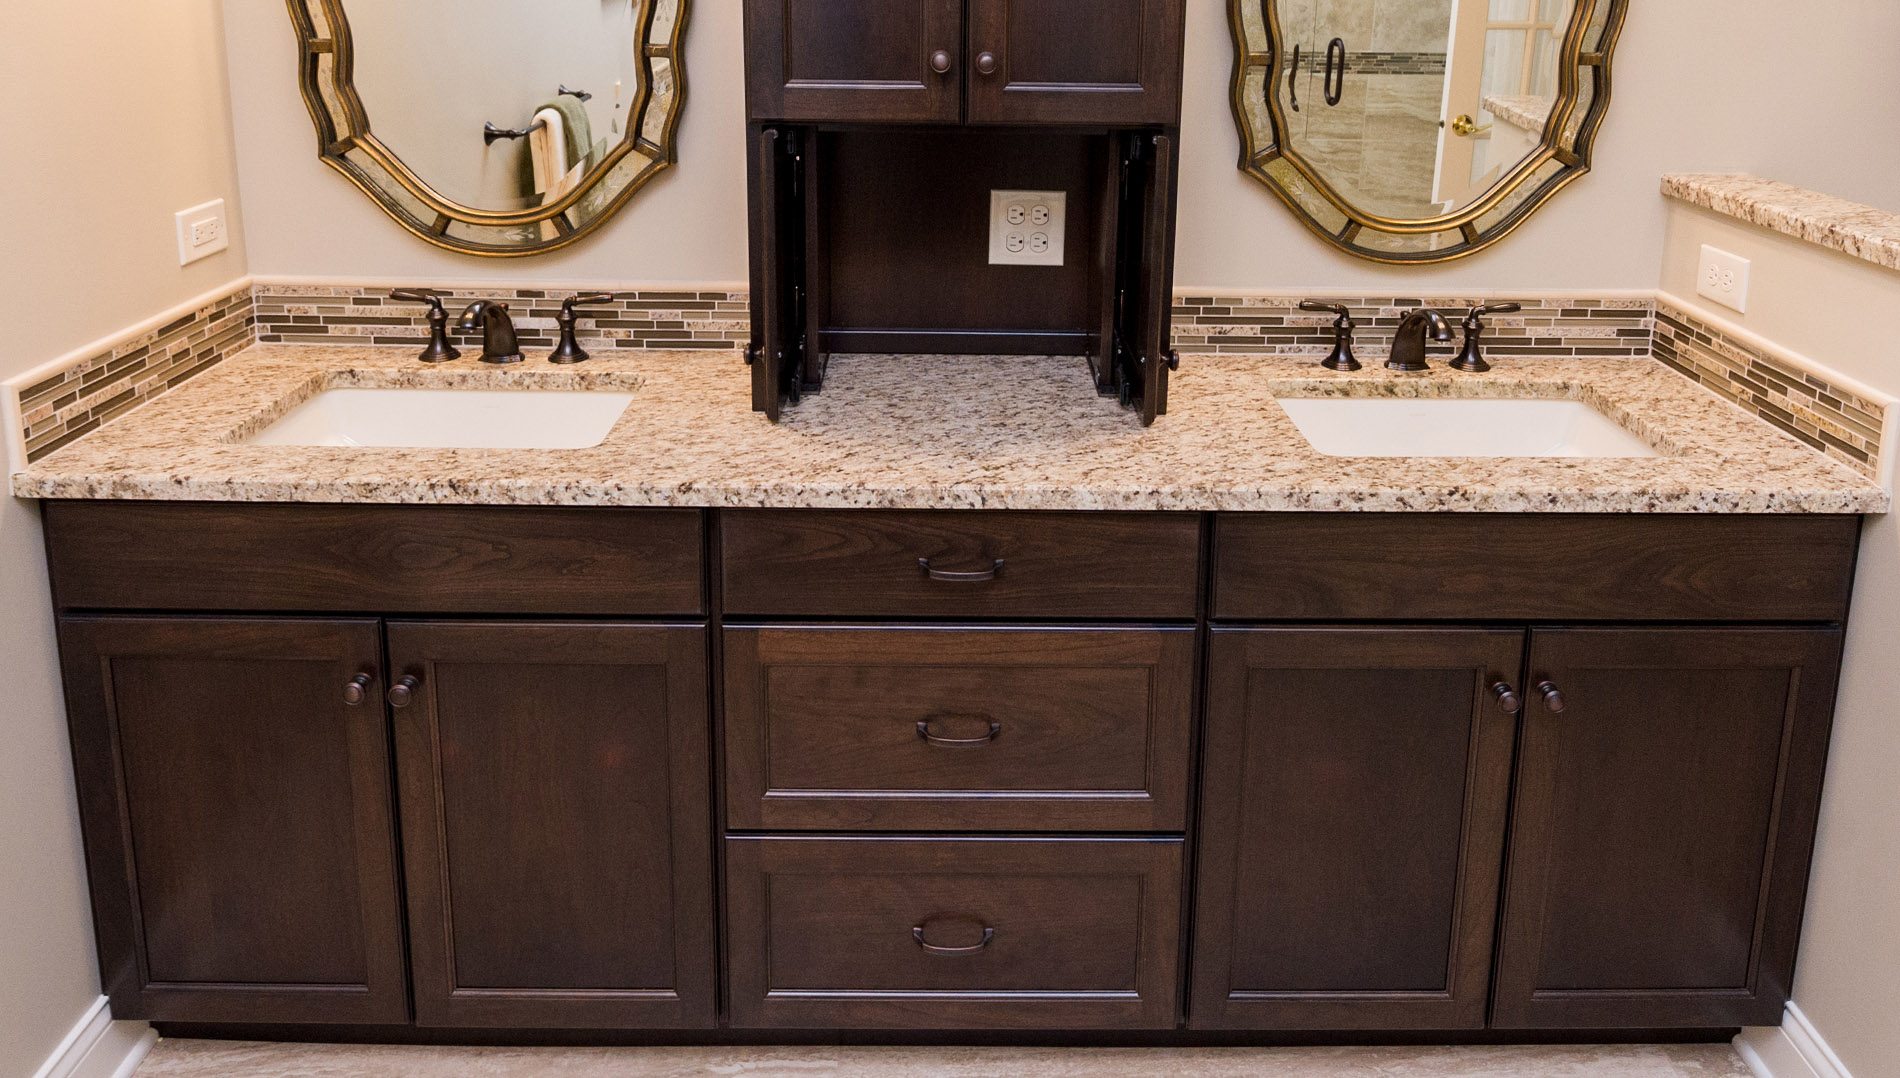 double vanity with storage tower. The large double vanity has ample room for two Besides the tower storage  there deep drawers and roomy cabinetry below rectangular sinks Earth toned elegance fruitesborras com 100 Double Vanity With Storage Tower Images